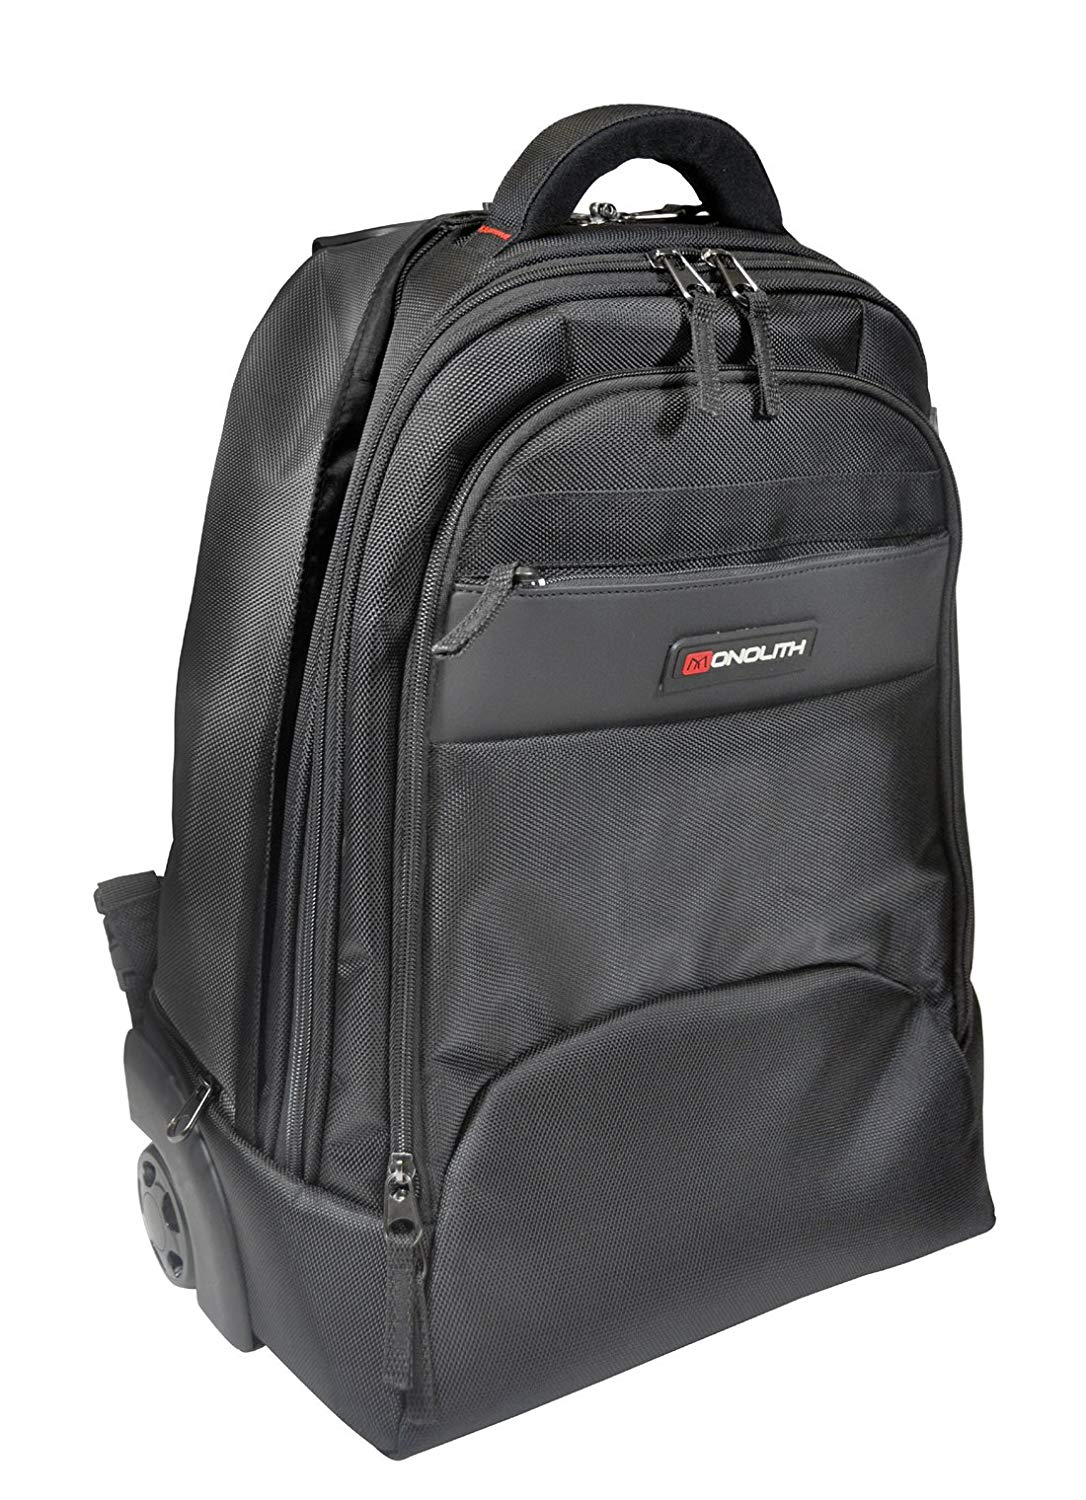 Bags & Cases Monolith Motion II Wheeled Laptop Backpack